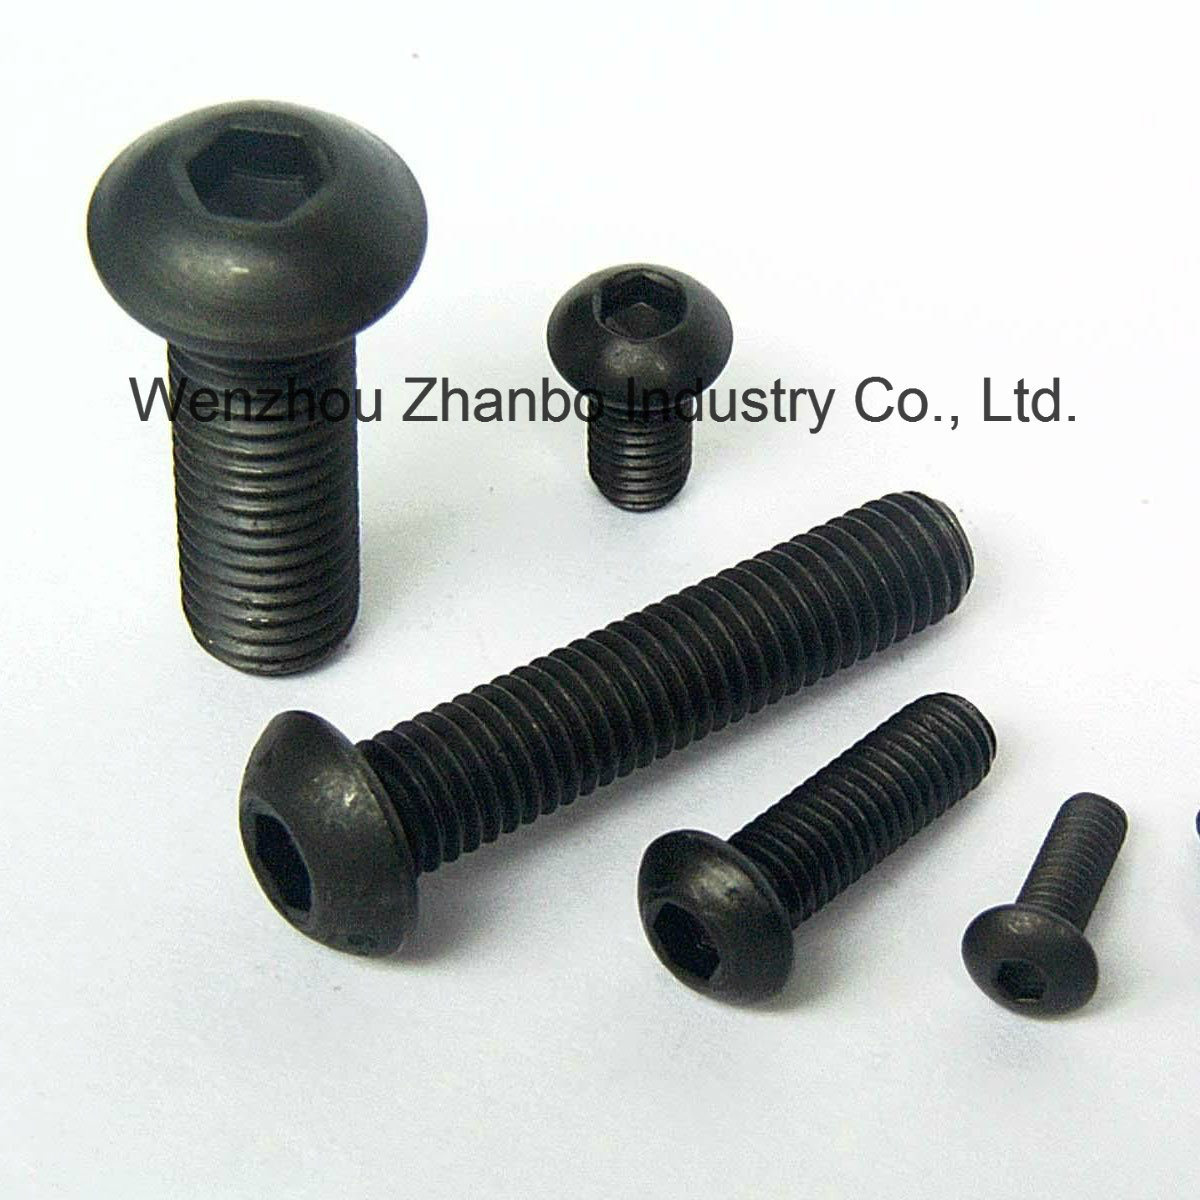 High Strength Steel, Hexagon Socket-Head Cap Screws 12.9 10.9 8.8, 4.8 M6-M20, DIN912